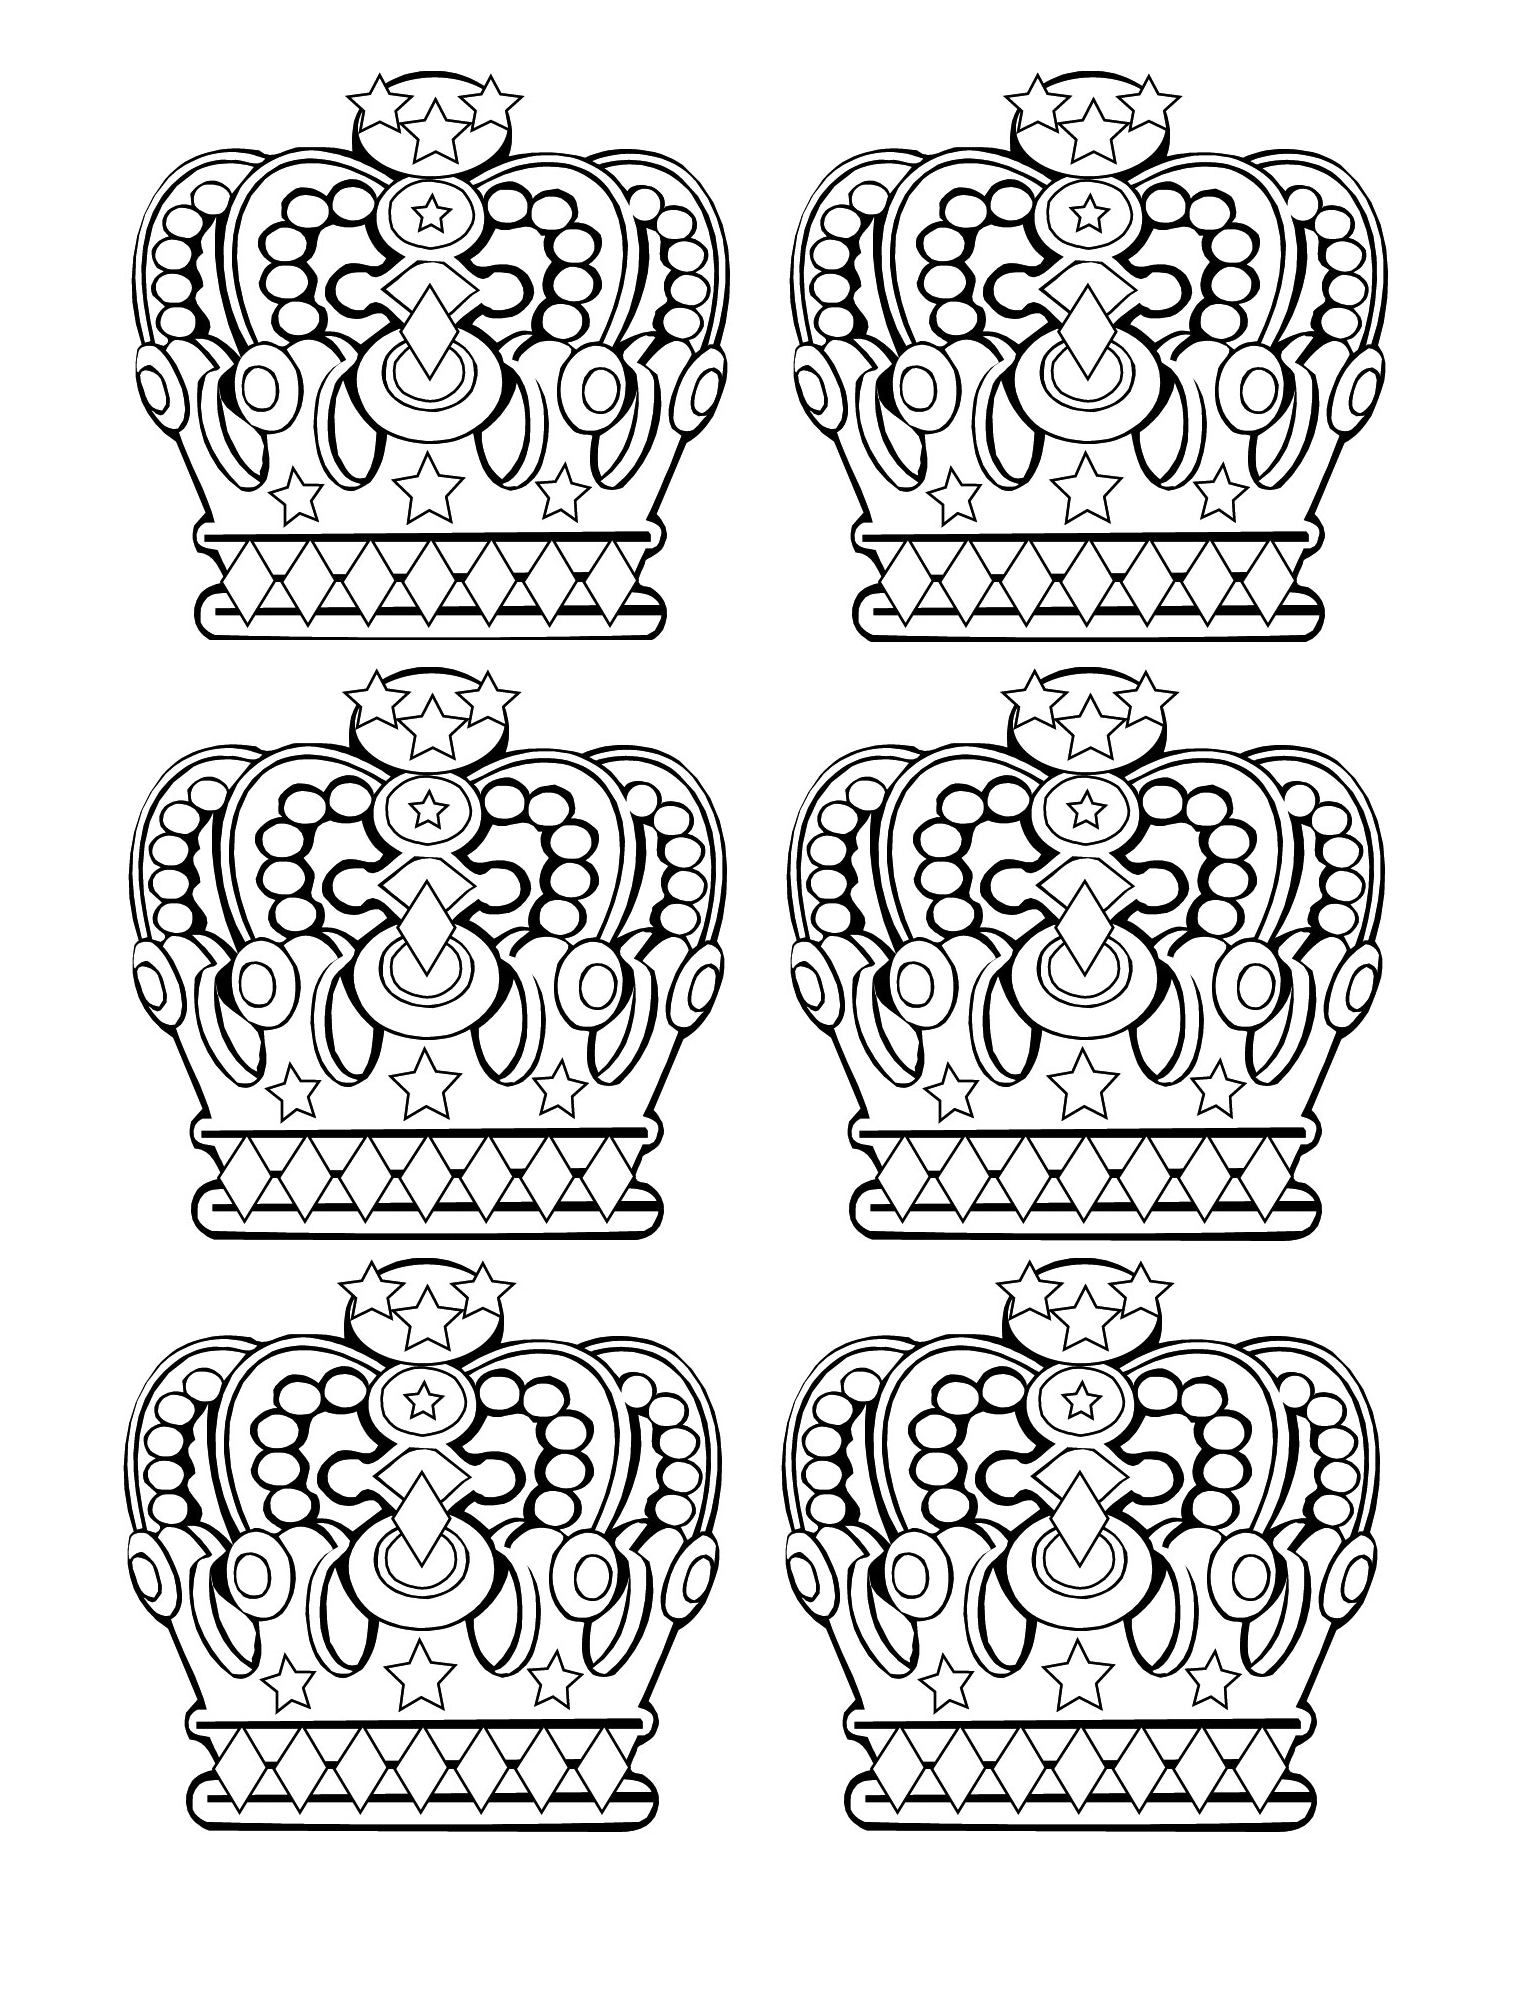 Free coloring page coloring-6-royal-crowns. Royal crowns (6 patterns ...